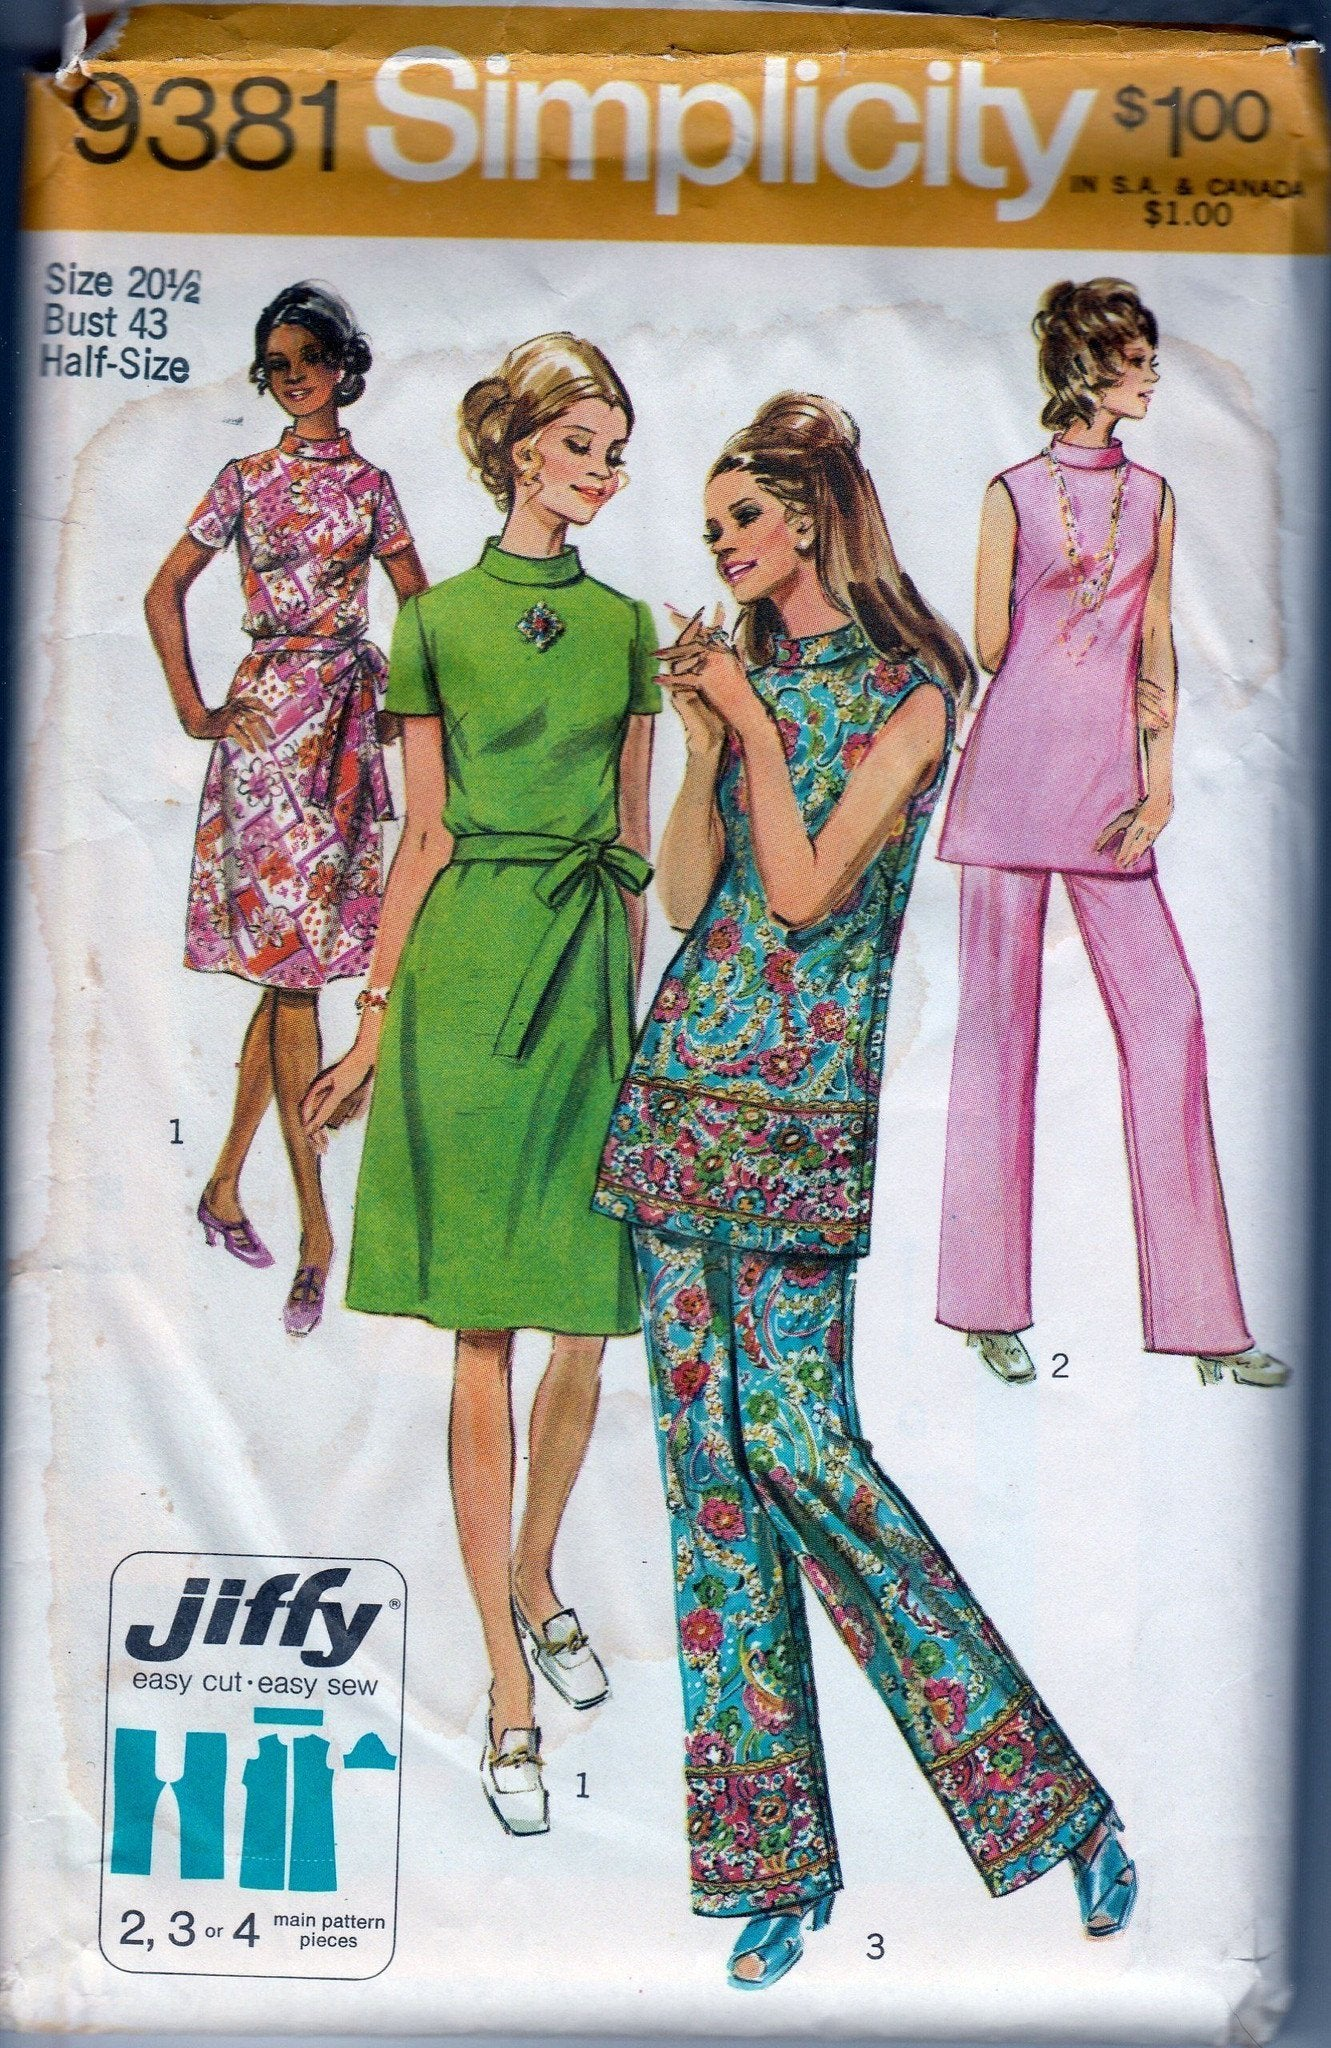 Simplicity 9381 Vintage 1970's Sewing Pattern Ladies High Neck Jiffy Dress Pants Half Sizes - VintageStitching - Vintage Sewing Patterns